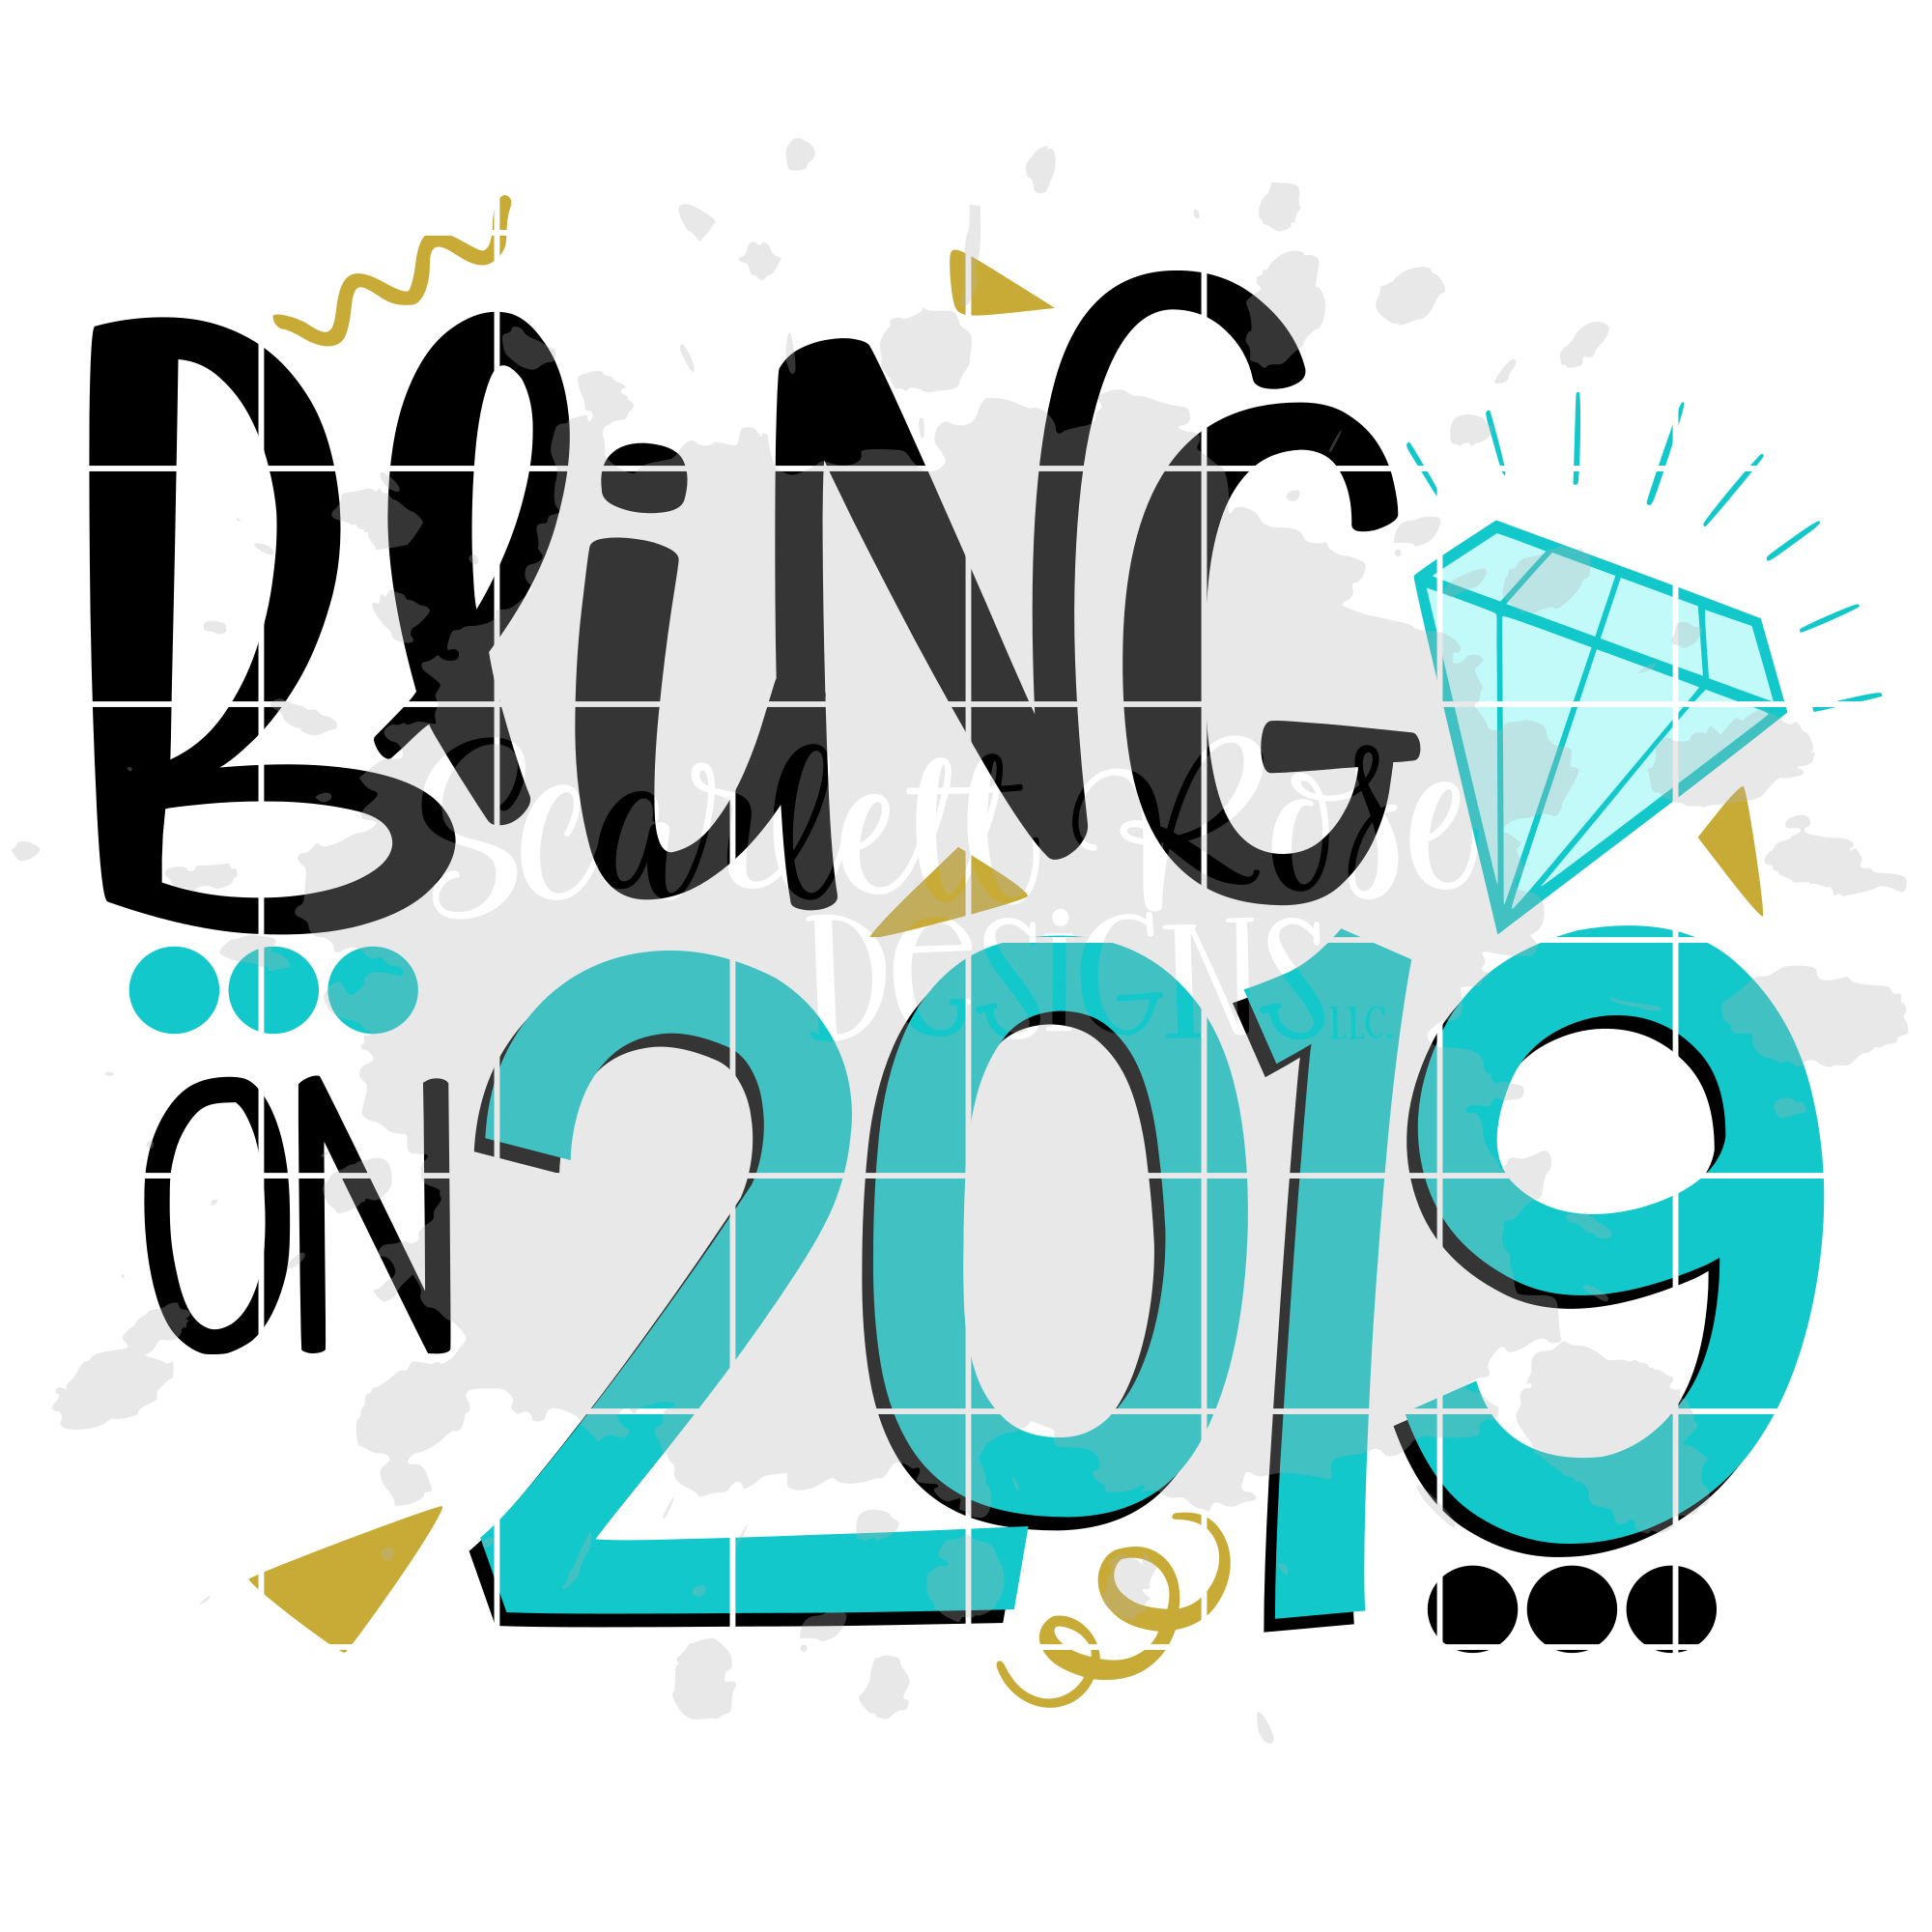 Bling on 2019 - New Year's SVG example image 2